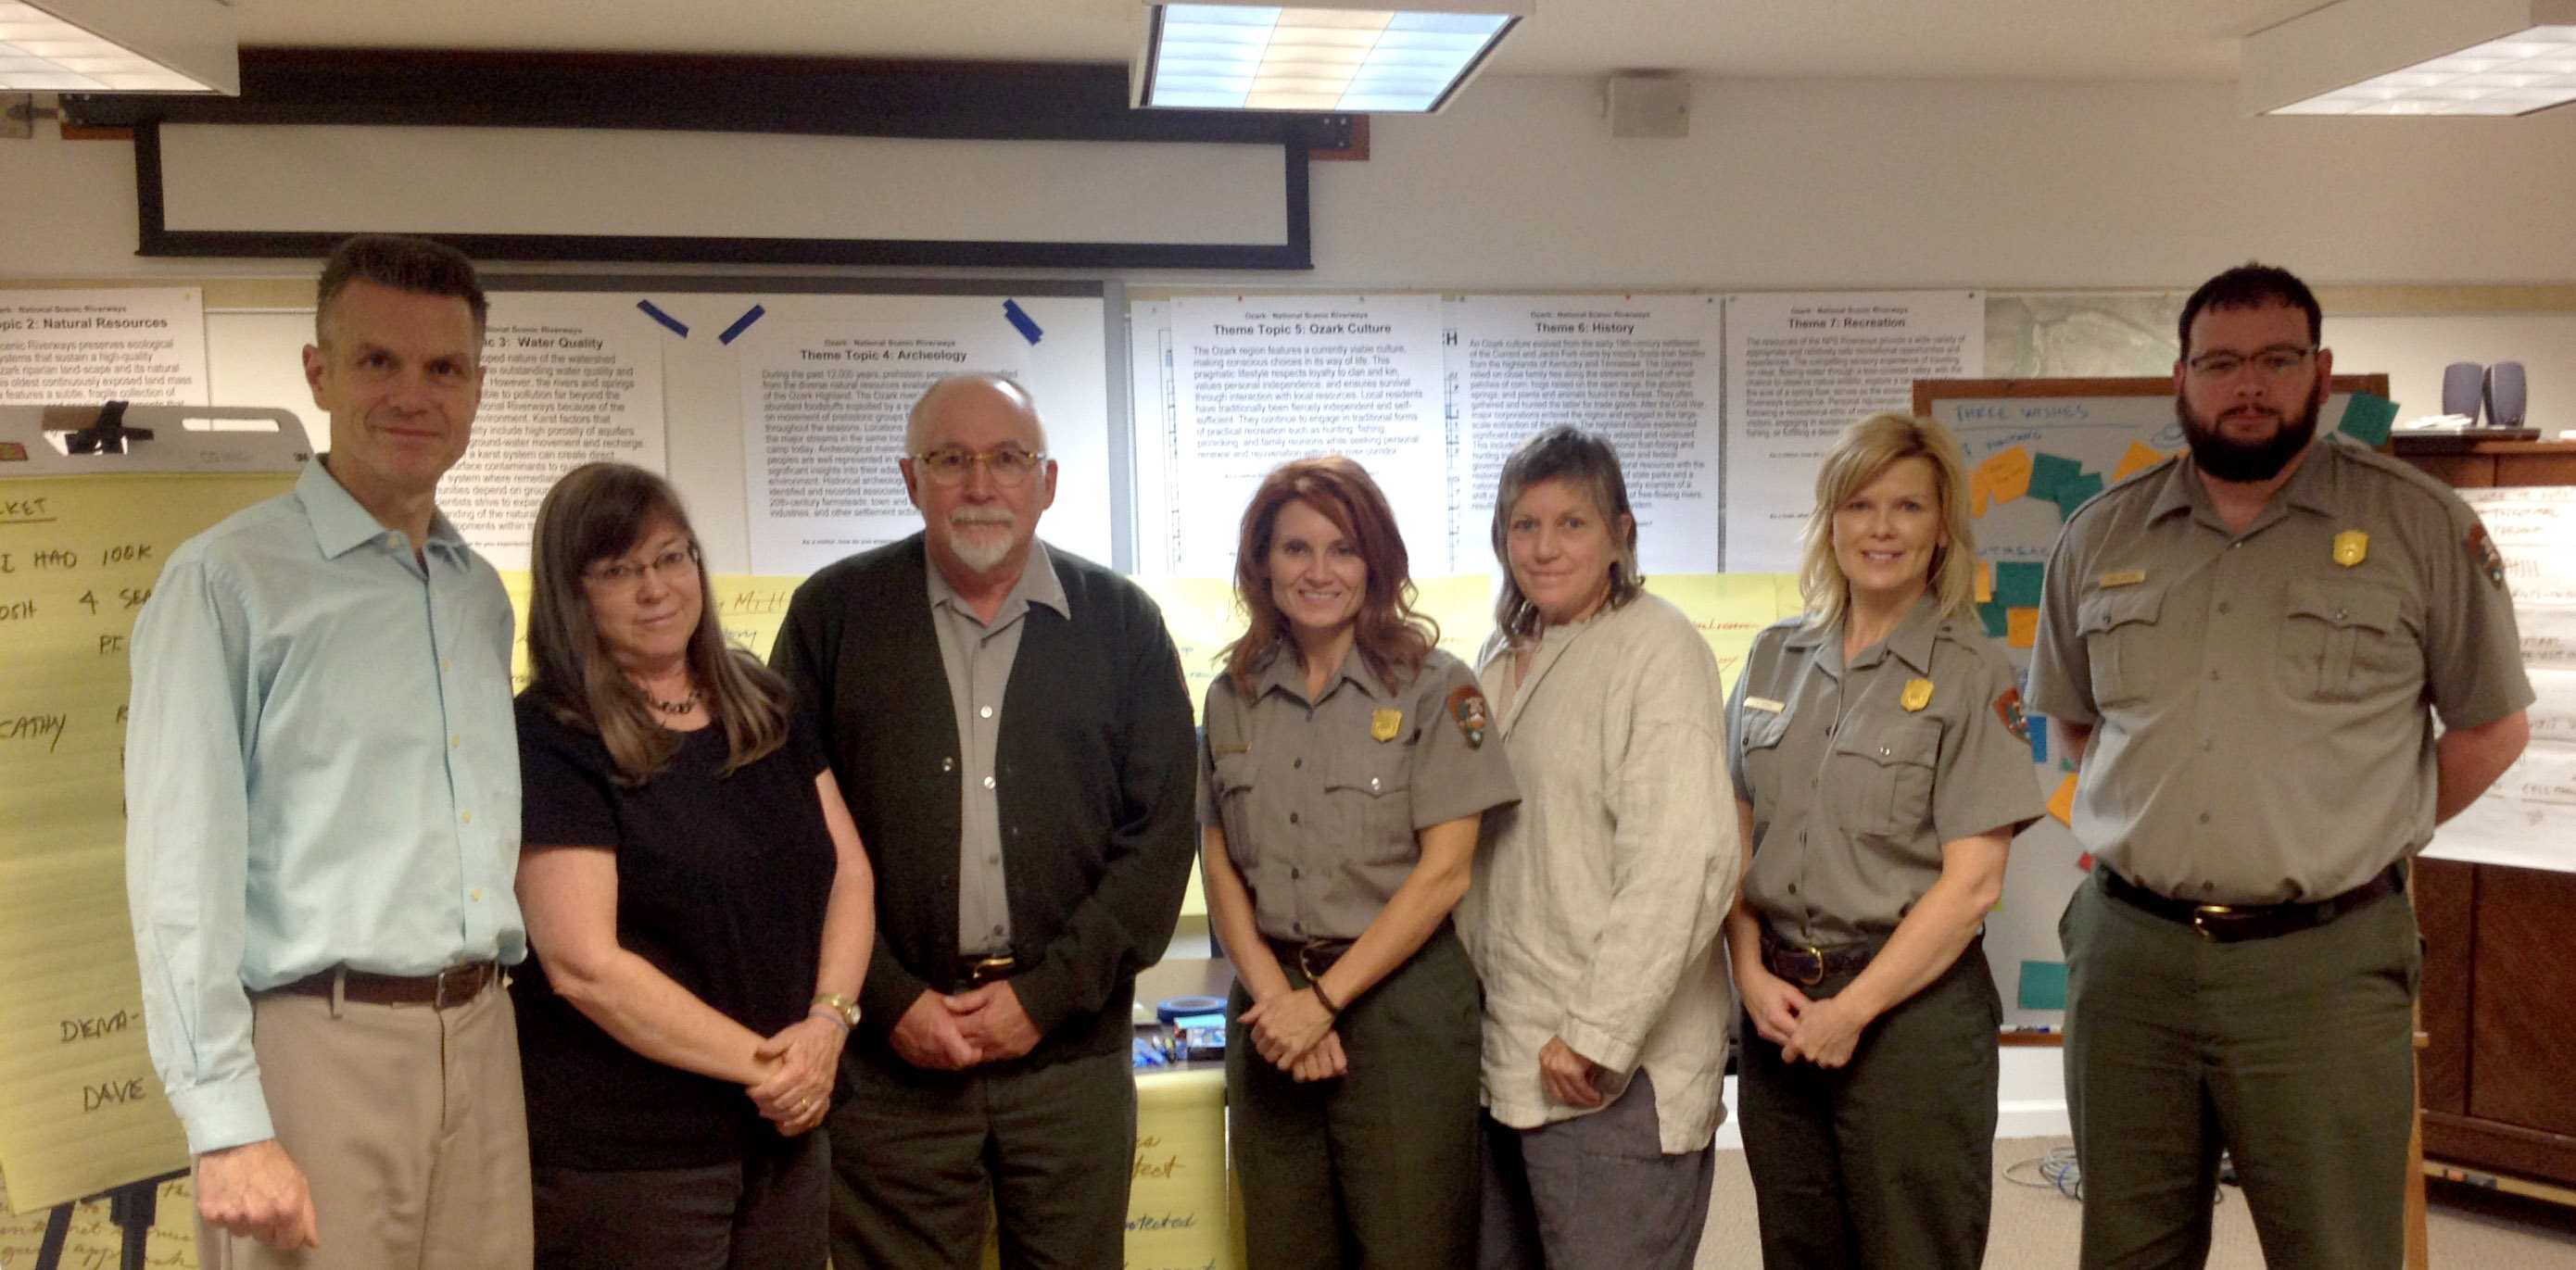 Ozark National Scenic Riverway NPS Interpretive team